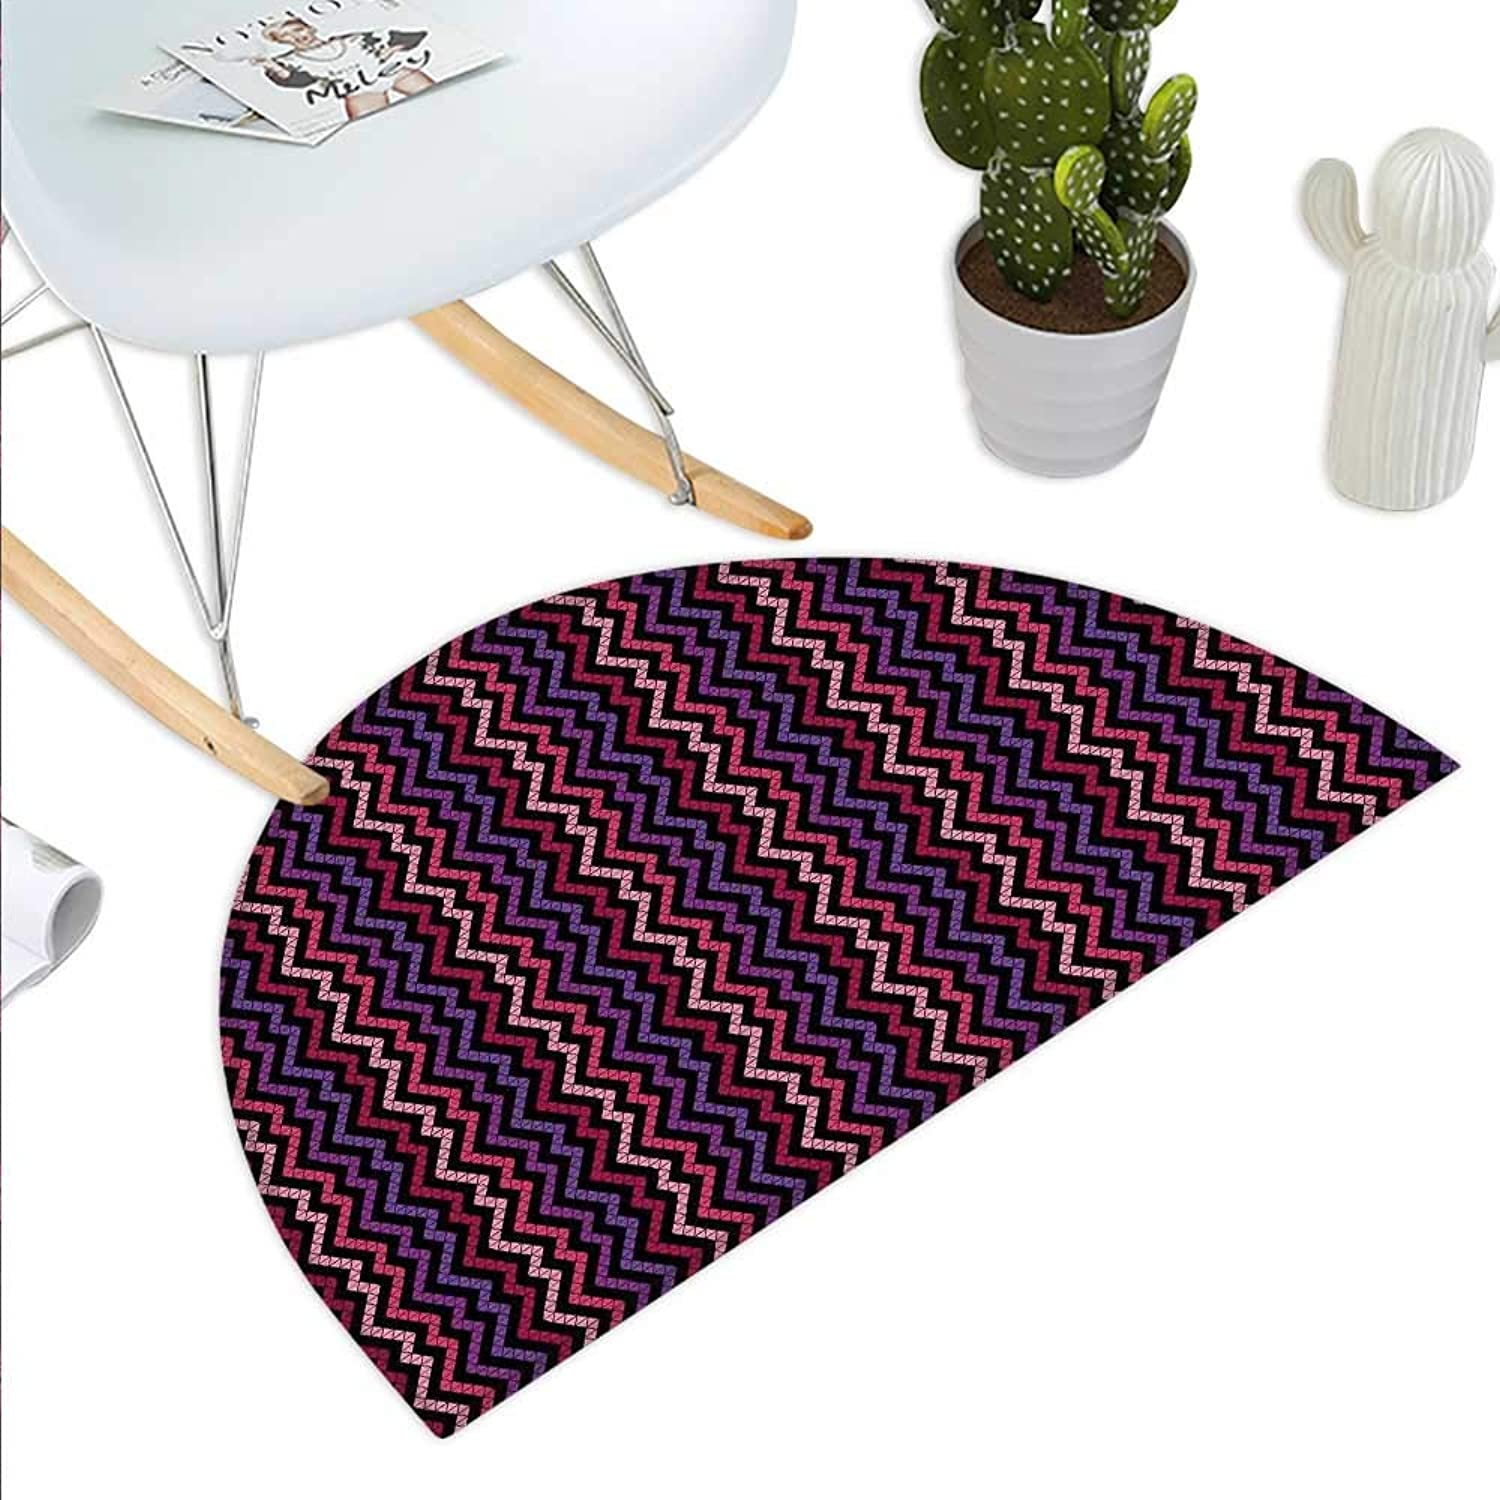 Modern Semicircle Doormat Tile Like Striped Squared Zig Zag Lines Details with Rainbow colors Artistic Image Halfmoon doormats H 23.6  xD 35.4  Multicolor